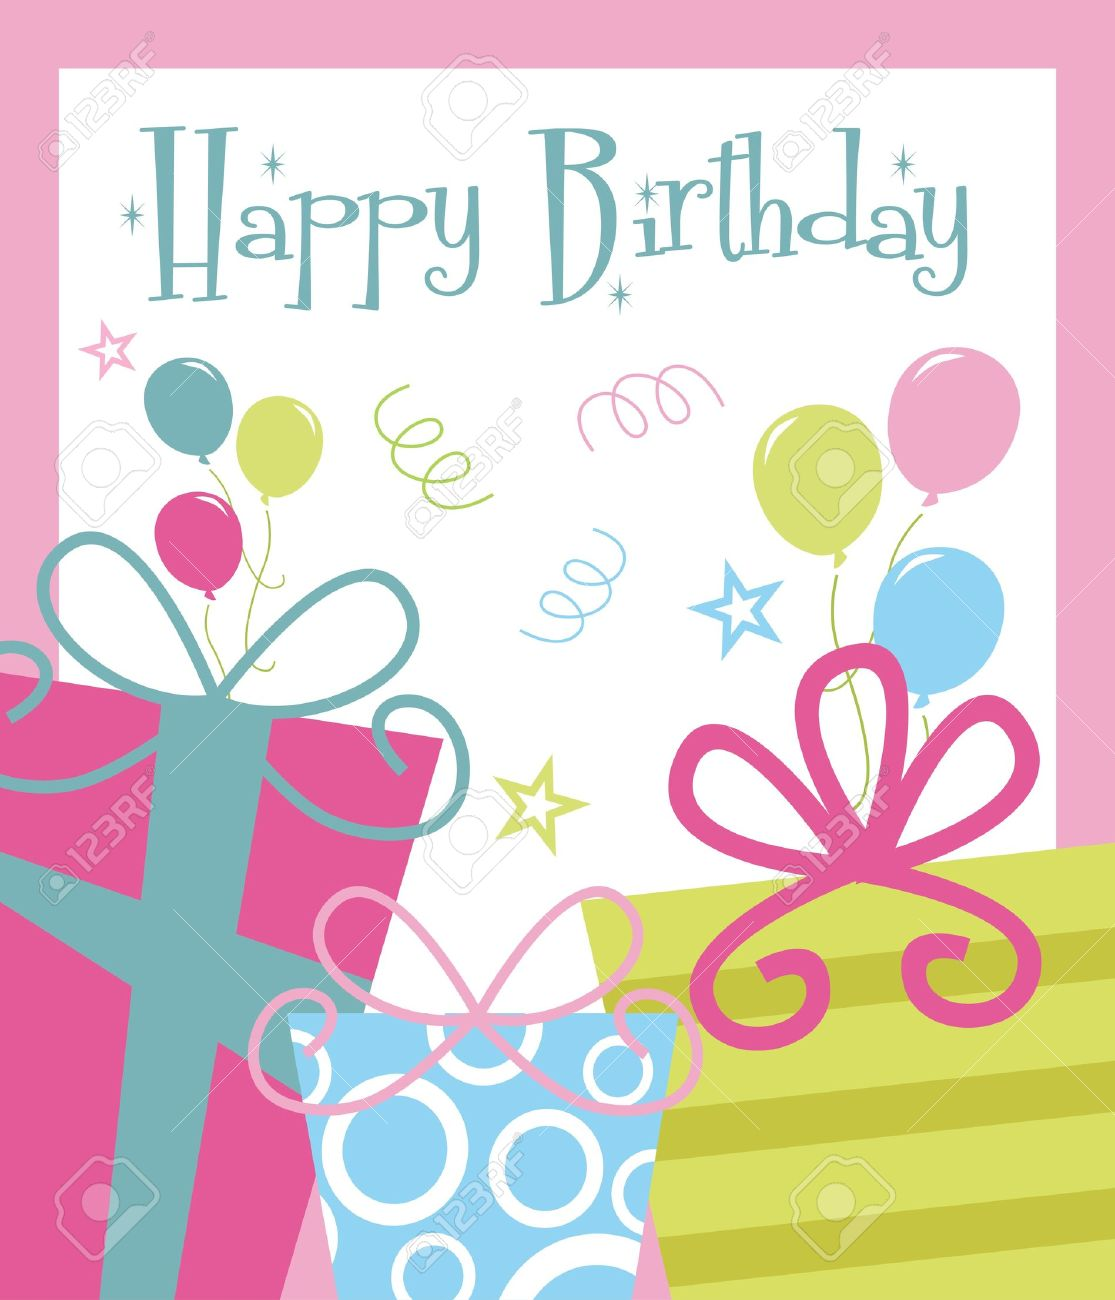 happy birthday greeting card illustration royalty free cliparts, Birthday card